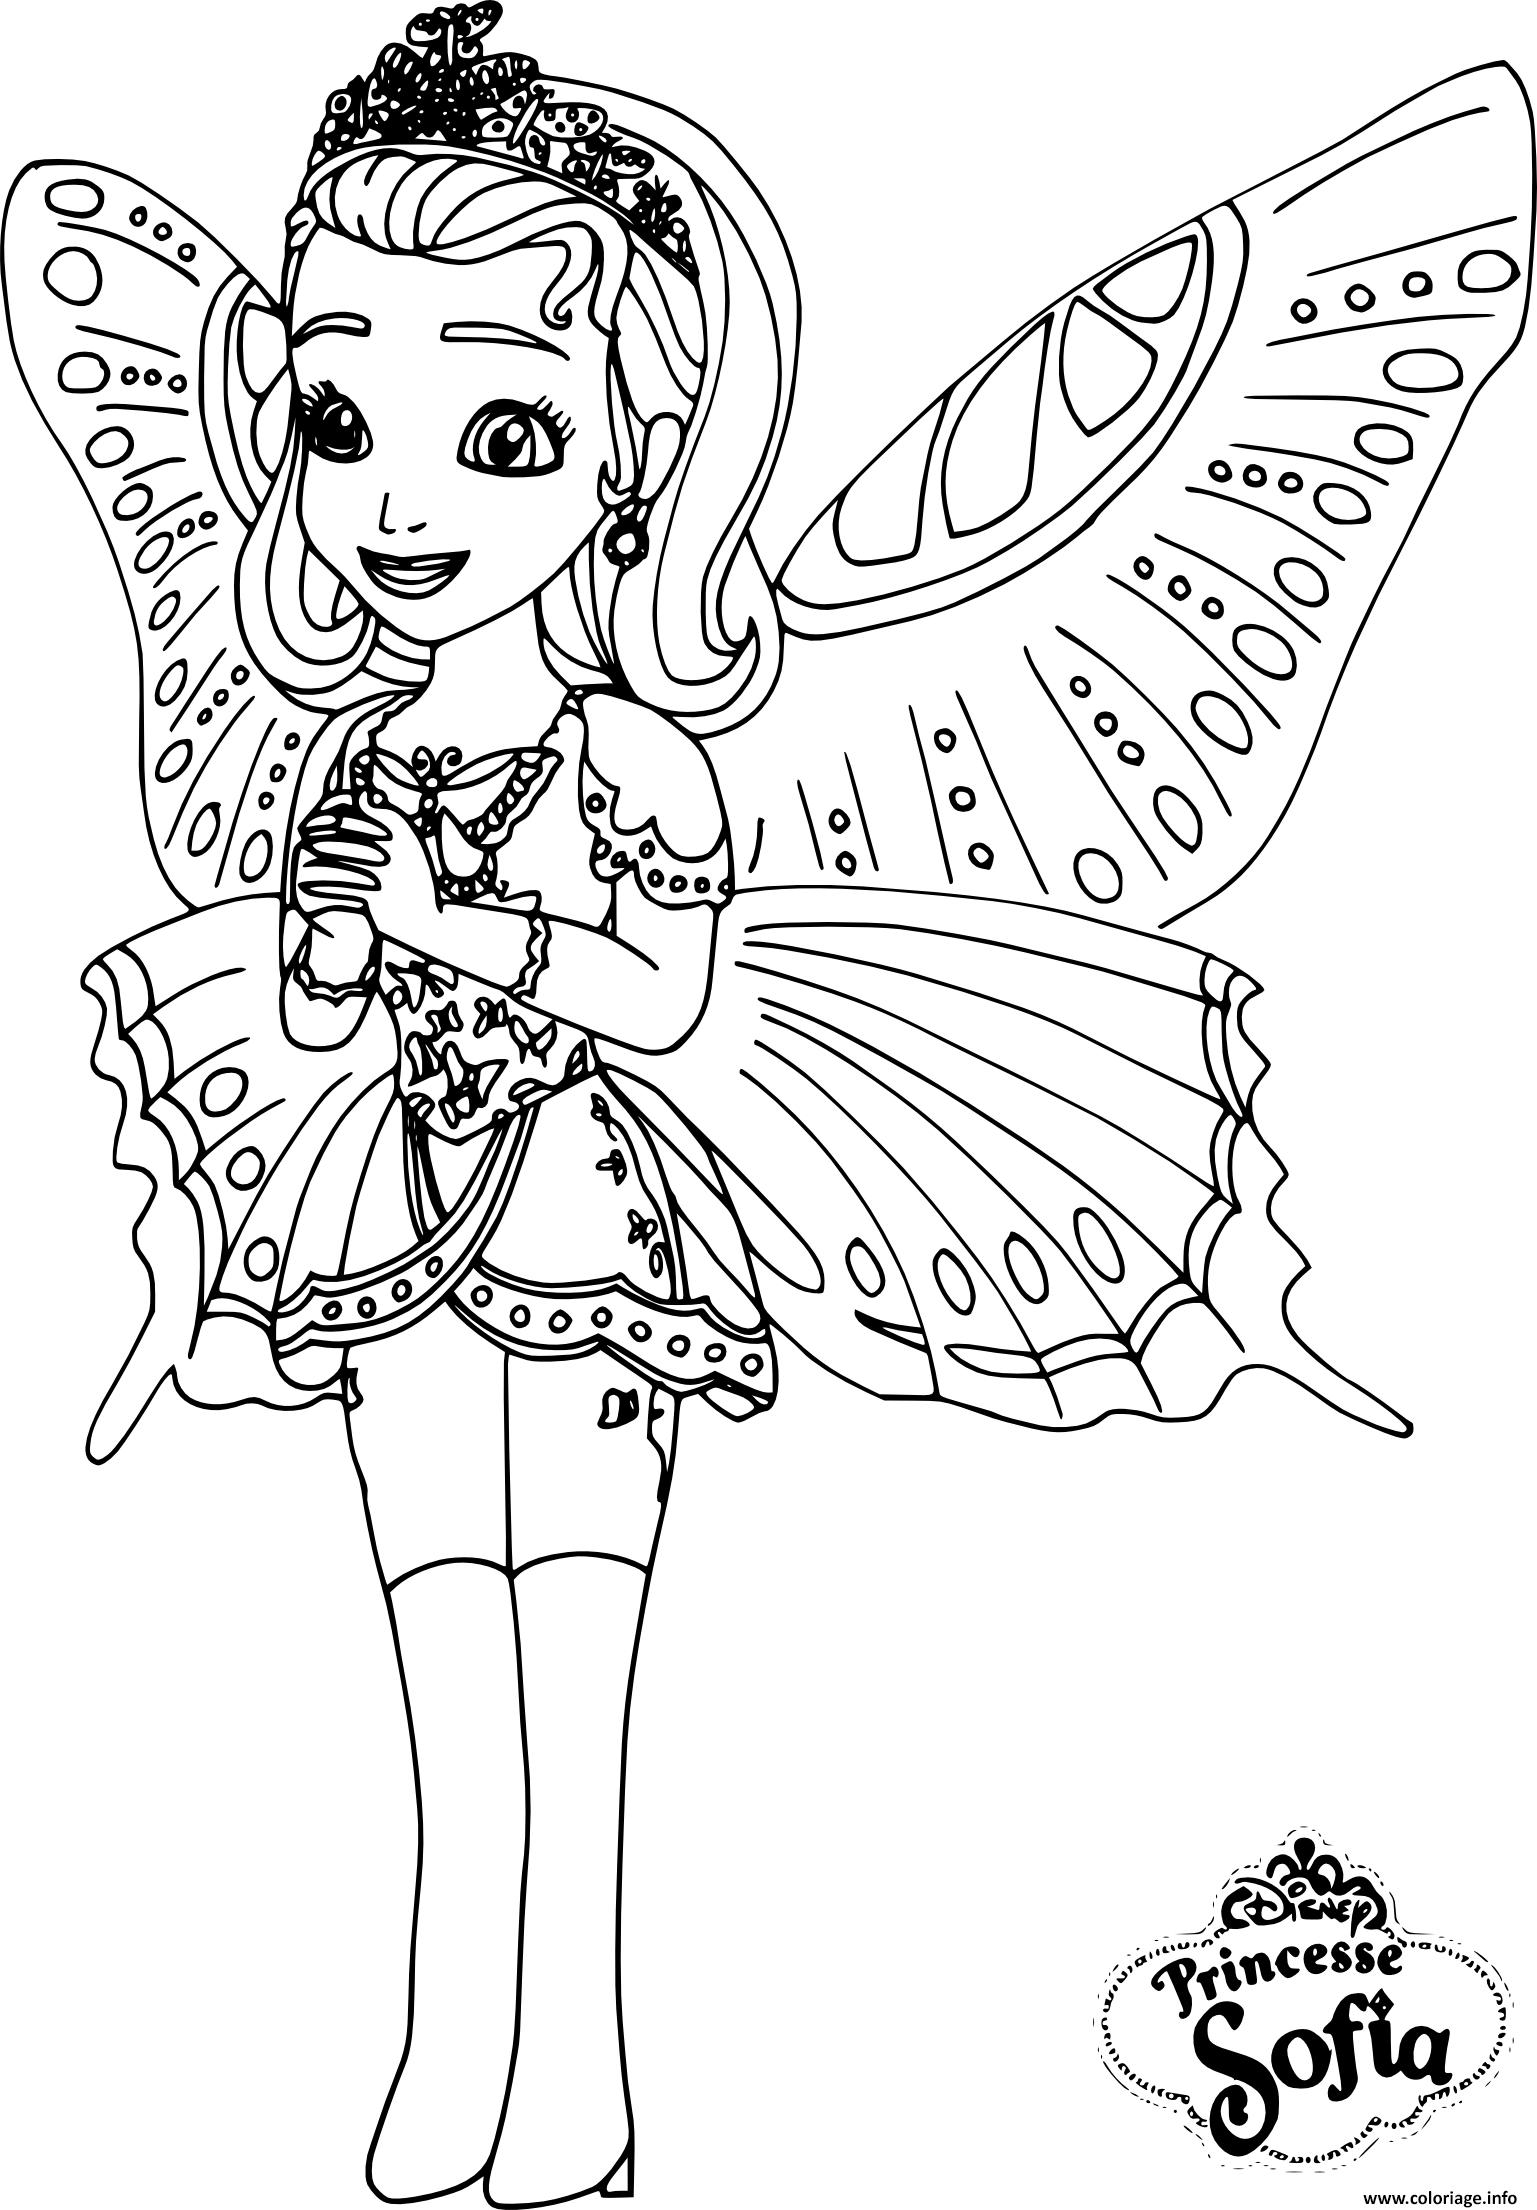 Coloriage princesse sofia papillon dessin - Barbie princesse coloriage ...